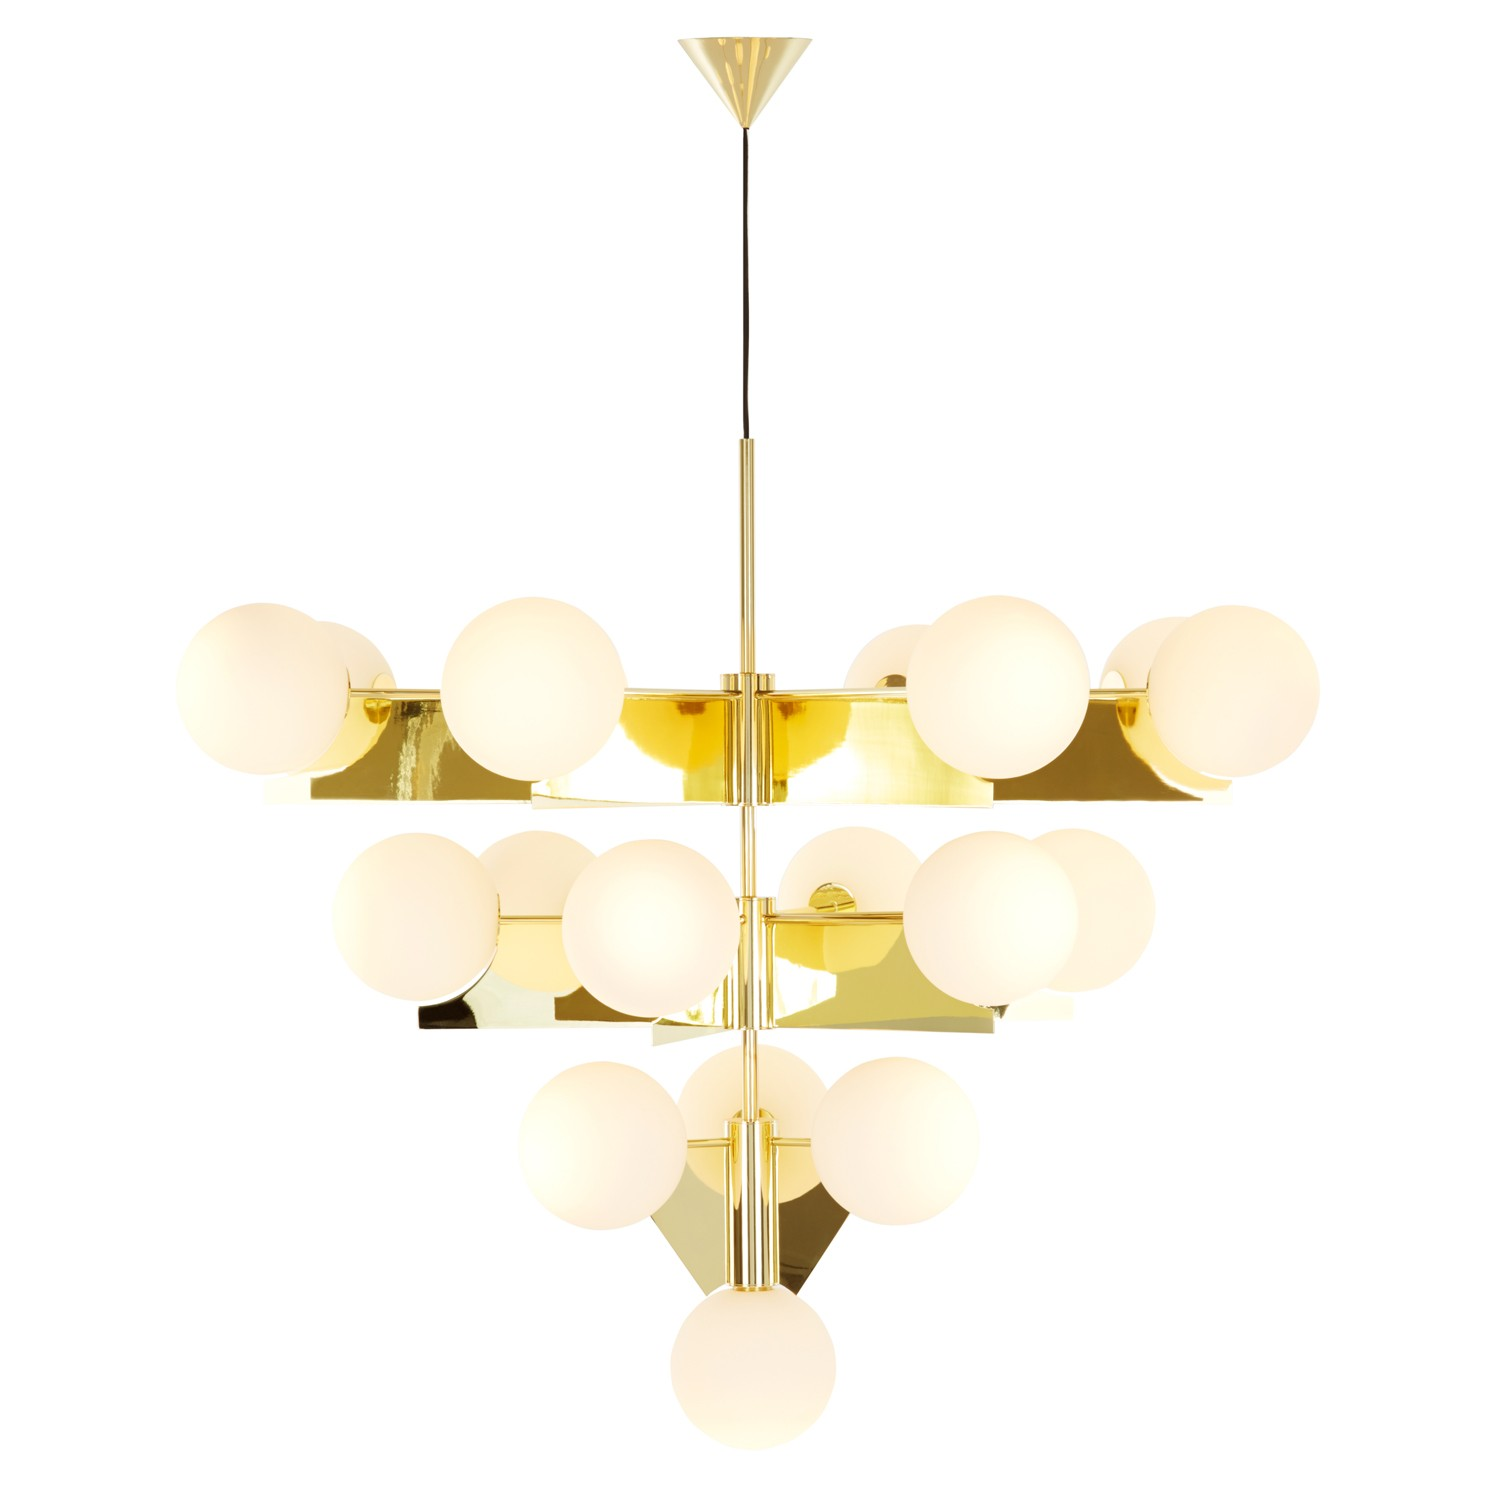 New tom dixon plane collection design necessities lighting - Spectacular modern pendant lighting fixtures as center of attention ...